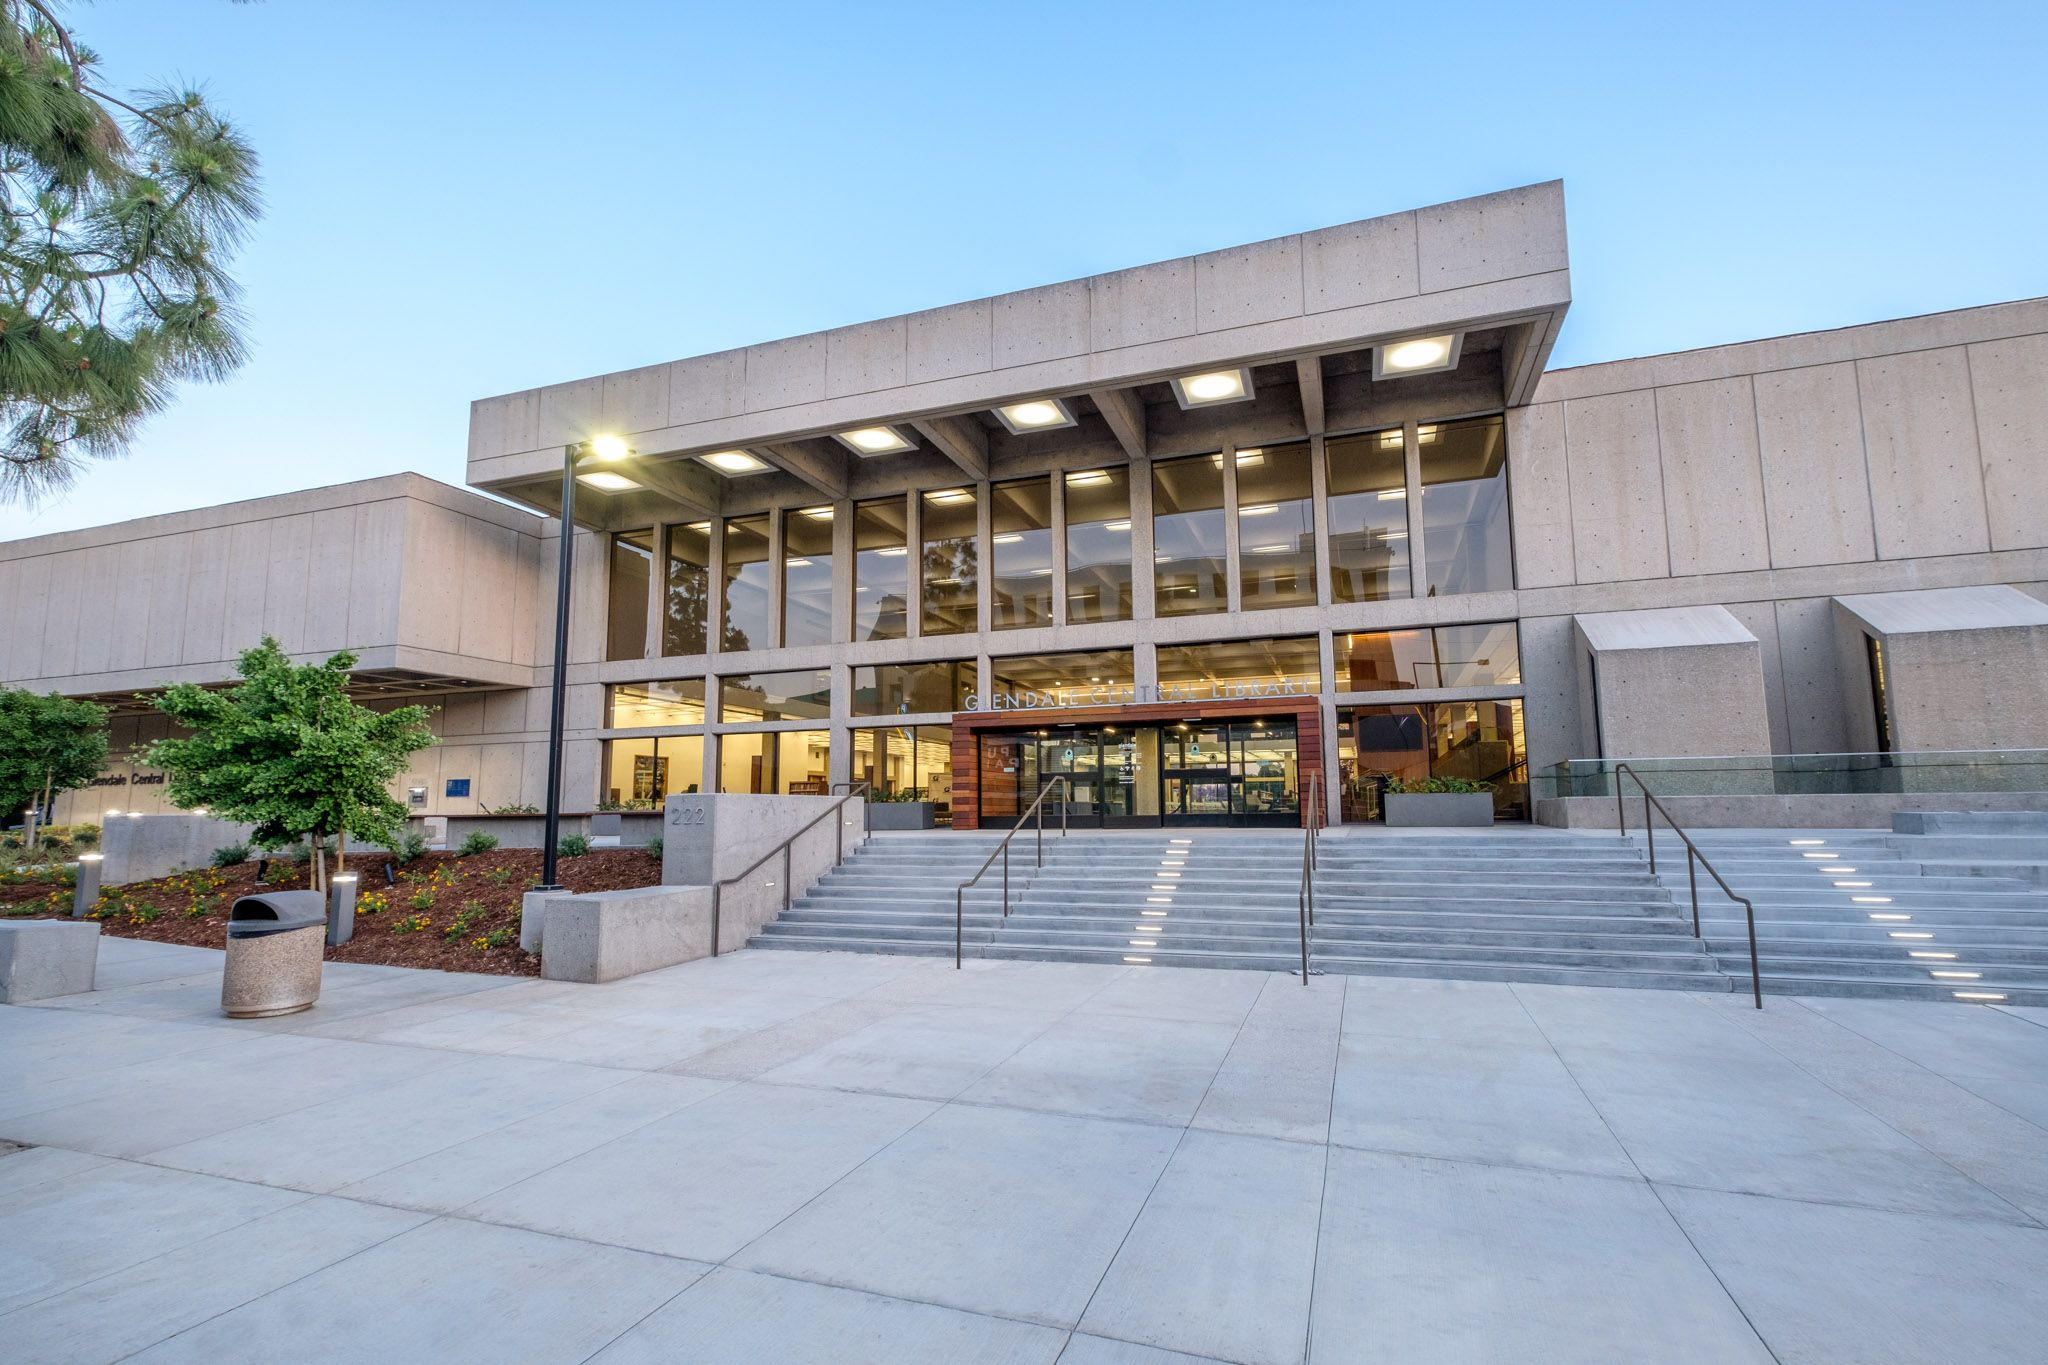 Glendale Central Library Renovation Project In Glendale California For City Of Glendale By Kemp Brothers Construct Building Design Central Library Renovations